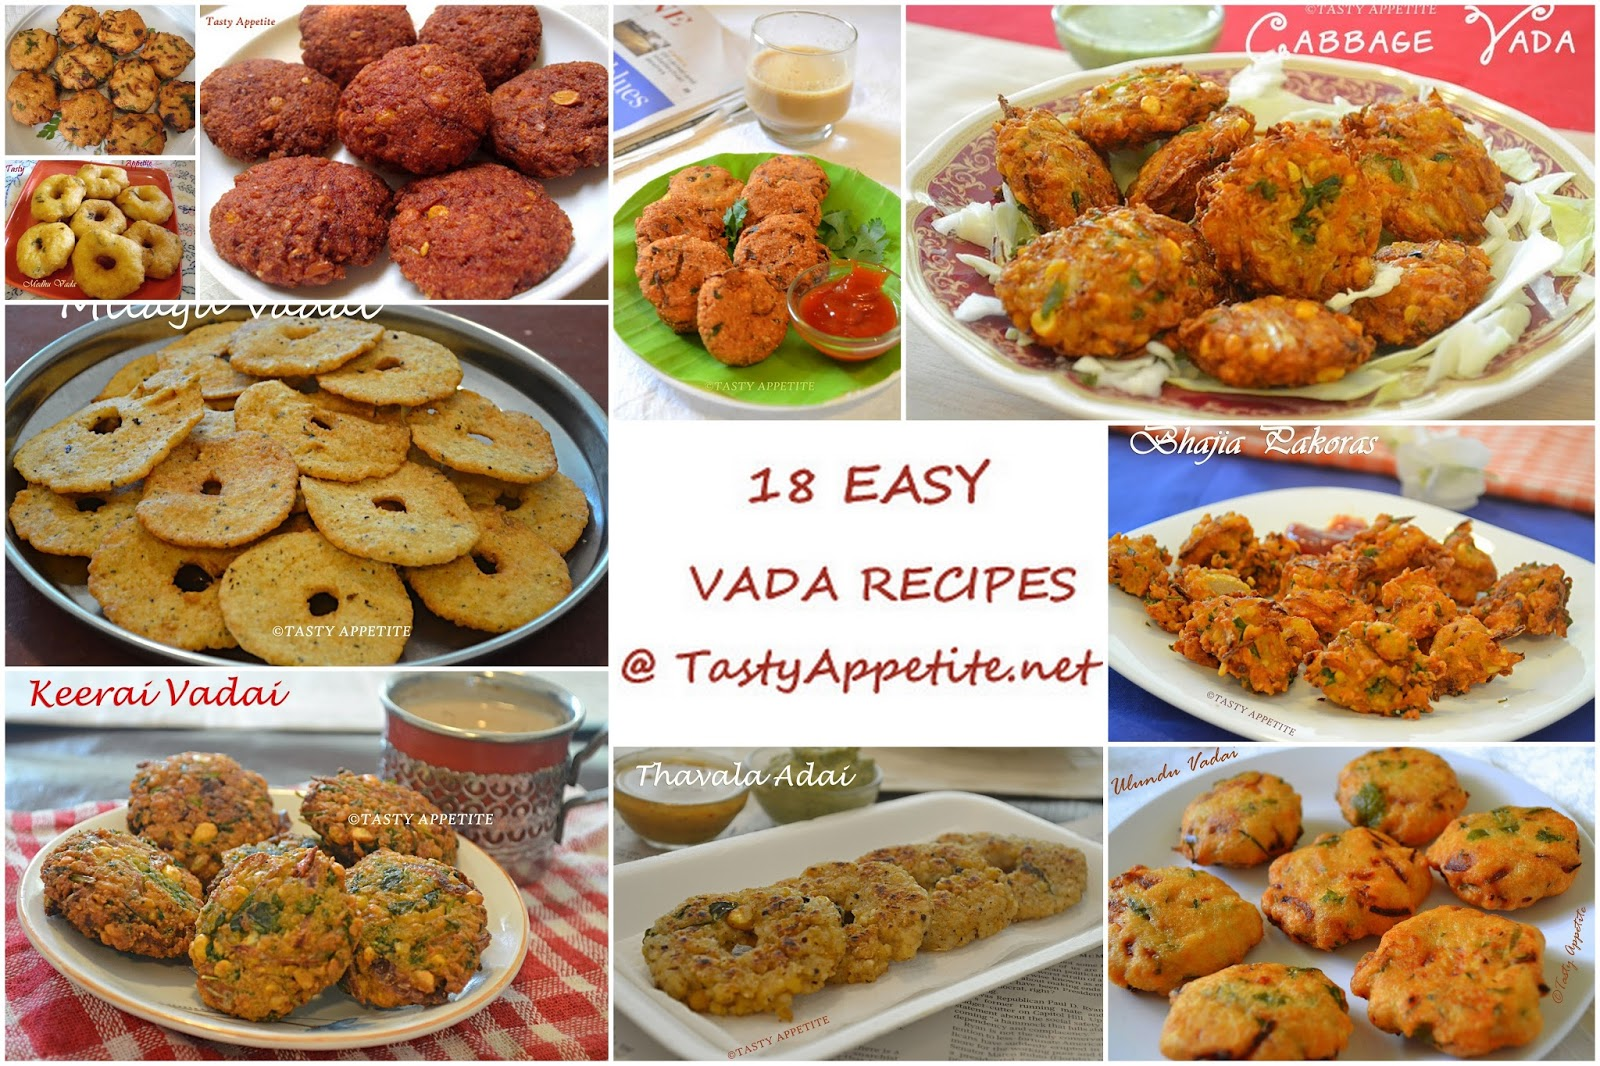 18 easy vada recipes south indian vadai recipes healthy snack 18 easy vada recipes south indian vadai recipes healthy snack recipes forumfinder Choice Image